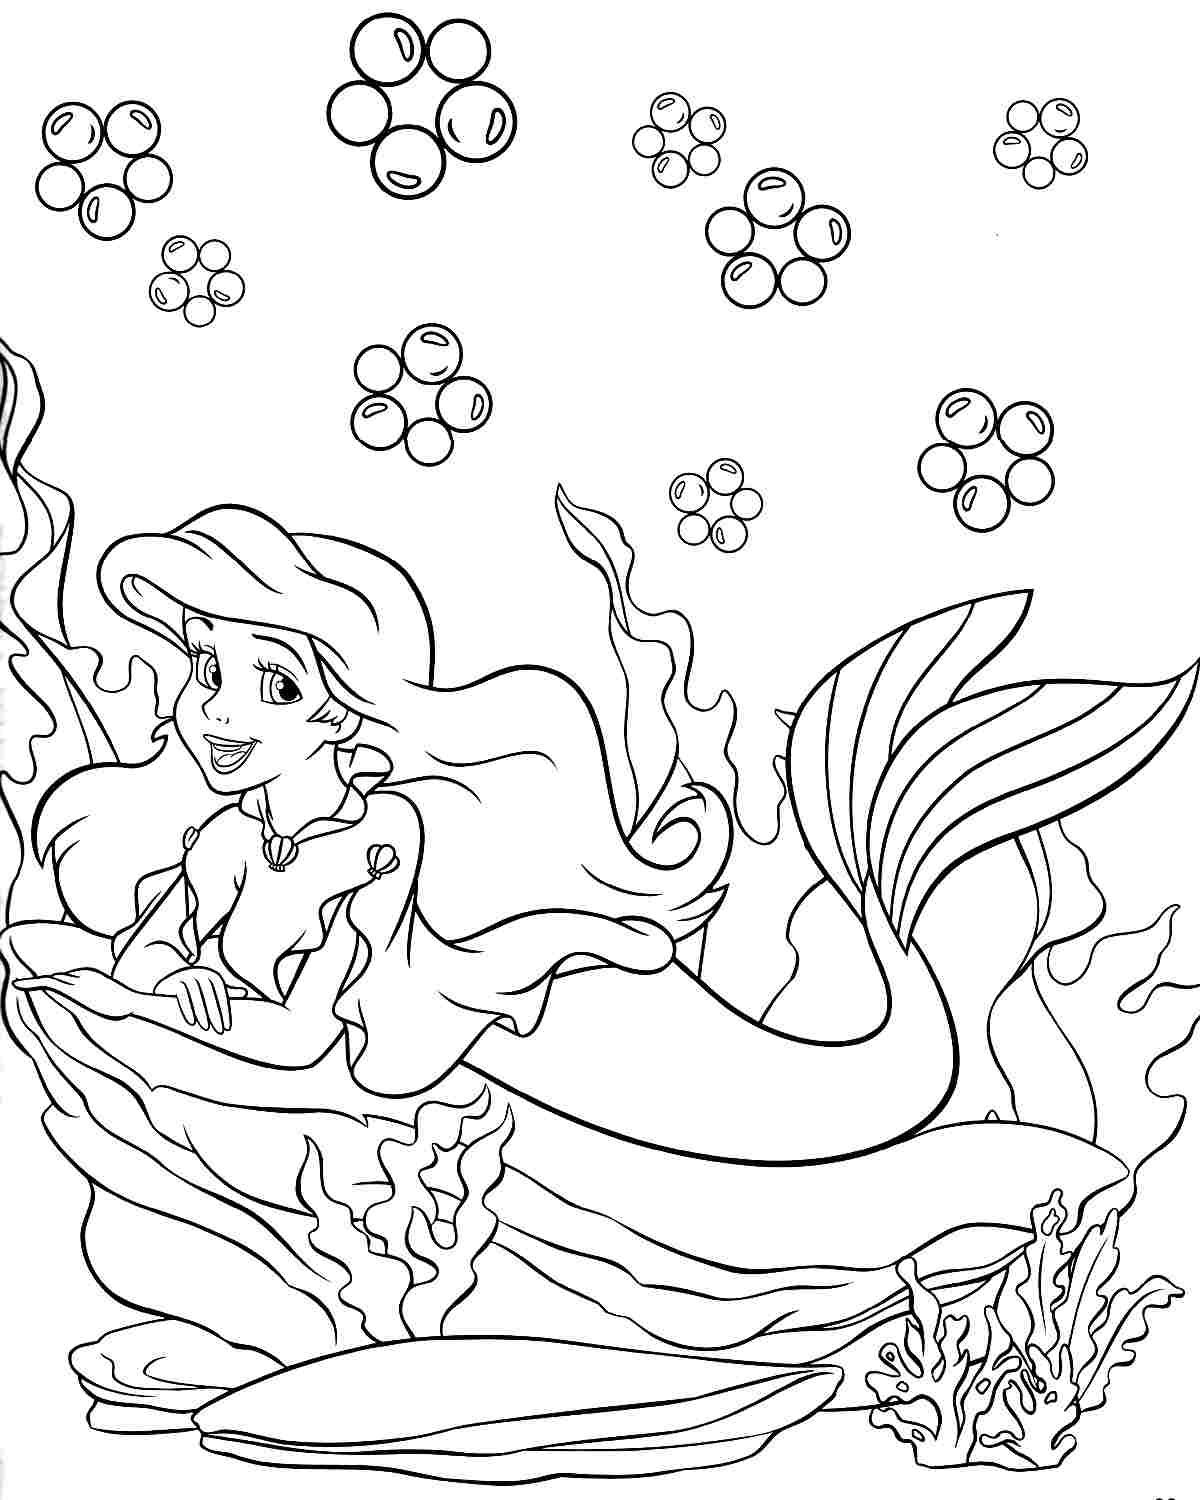 Christmas Coloring Pages Princess With Pin By Yooper Girl On Color Sea Mermaid Pinterest